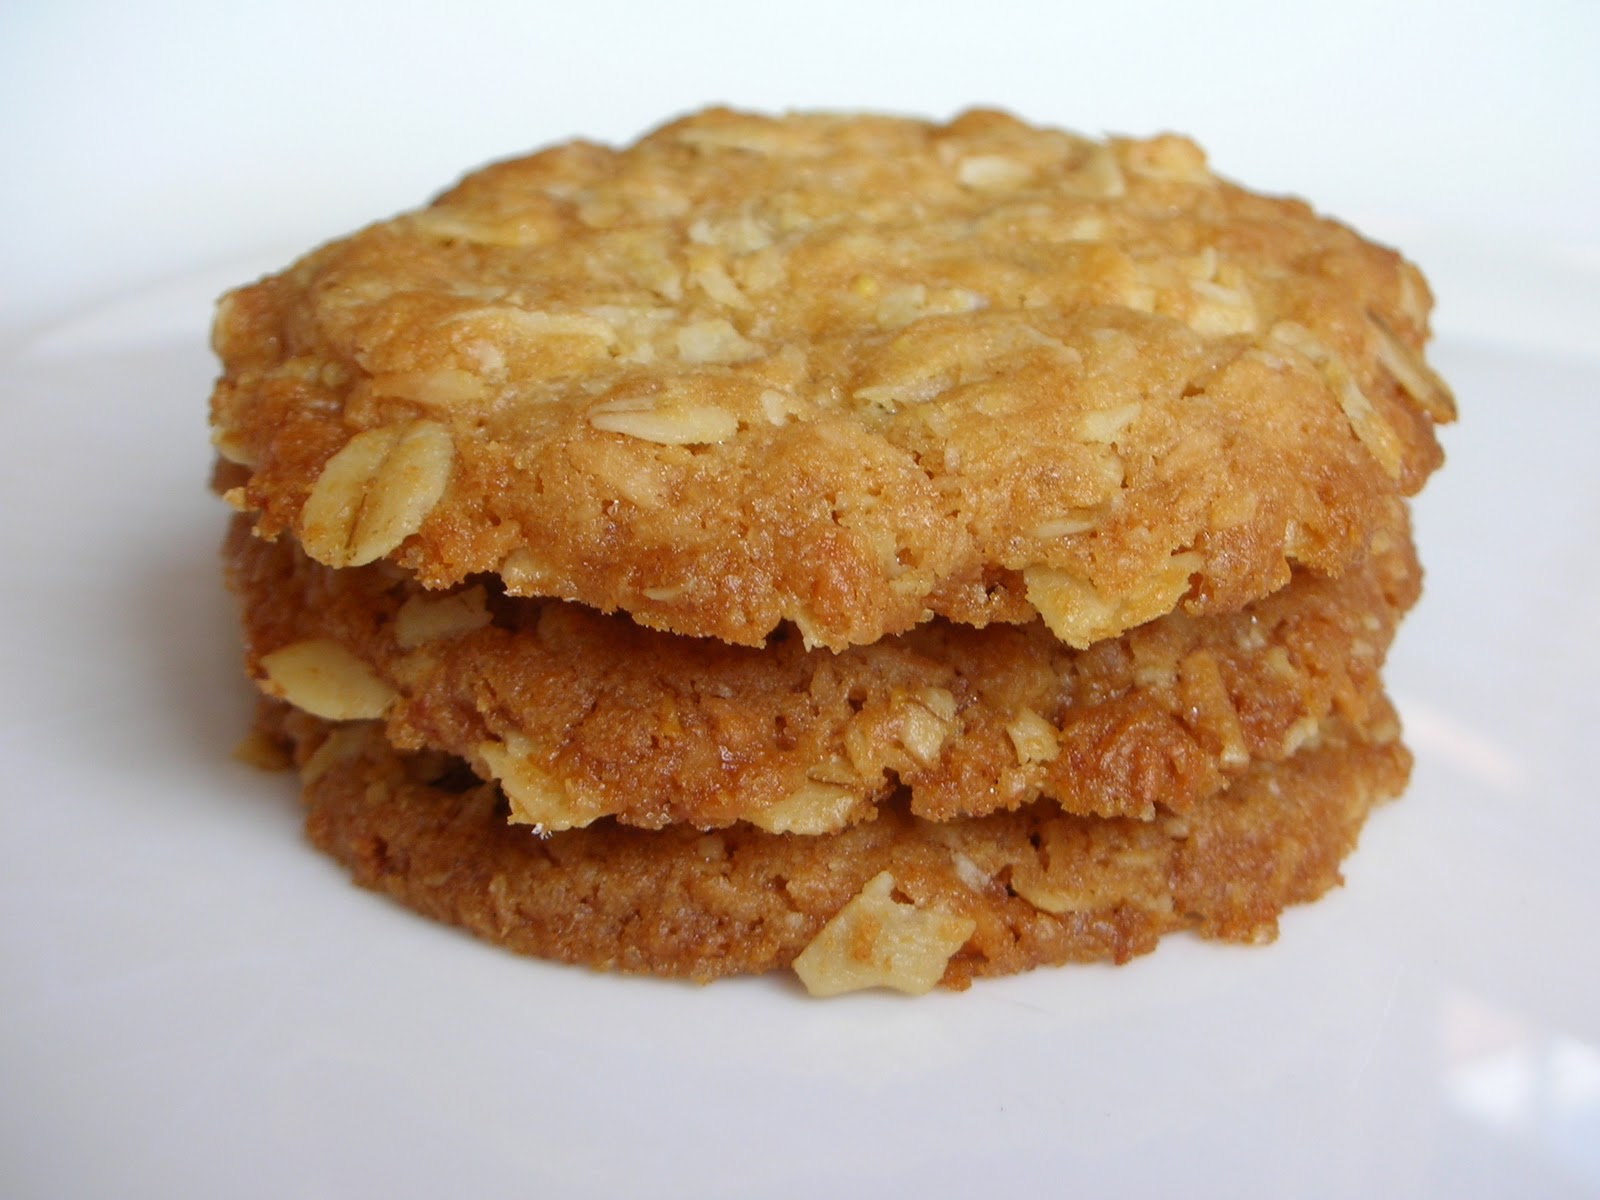 ... Good Eats: ANZAC Cookies/Biscuits Recipe (or Coconut Oat Cookies